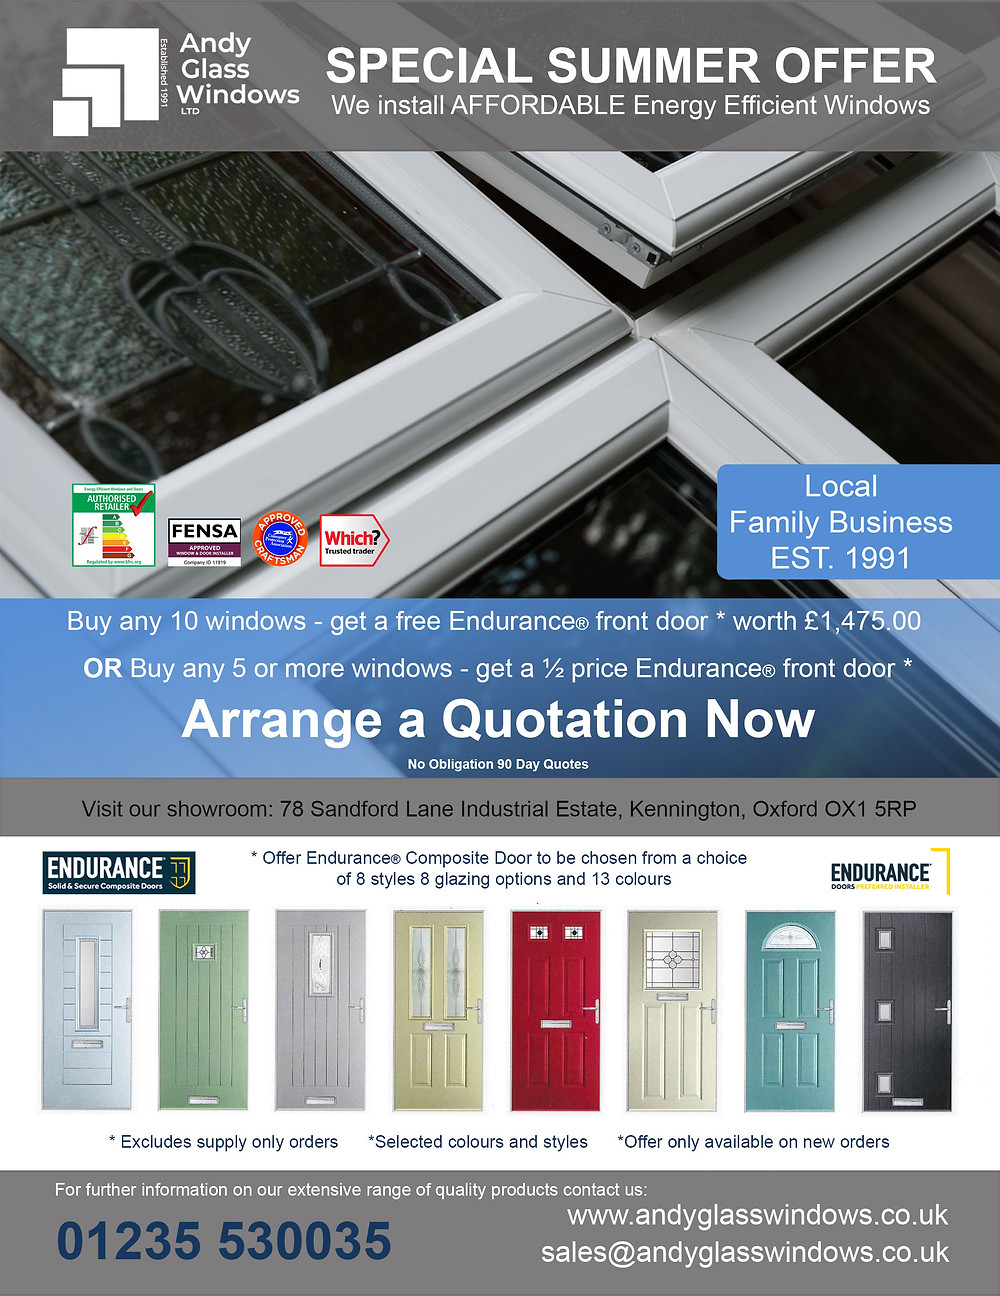 Special Summer Offer from Andy Glass Windows